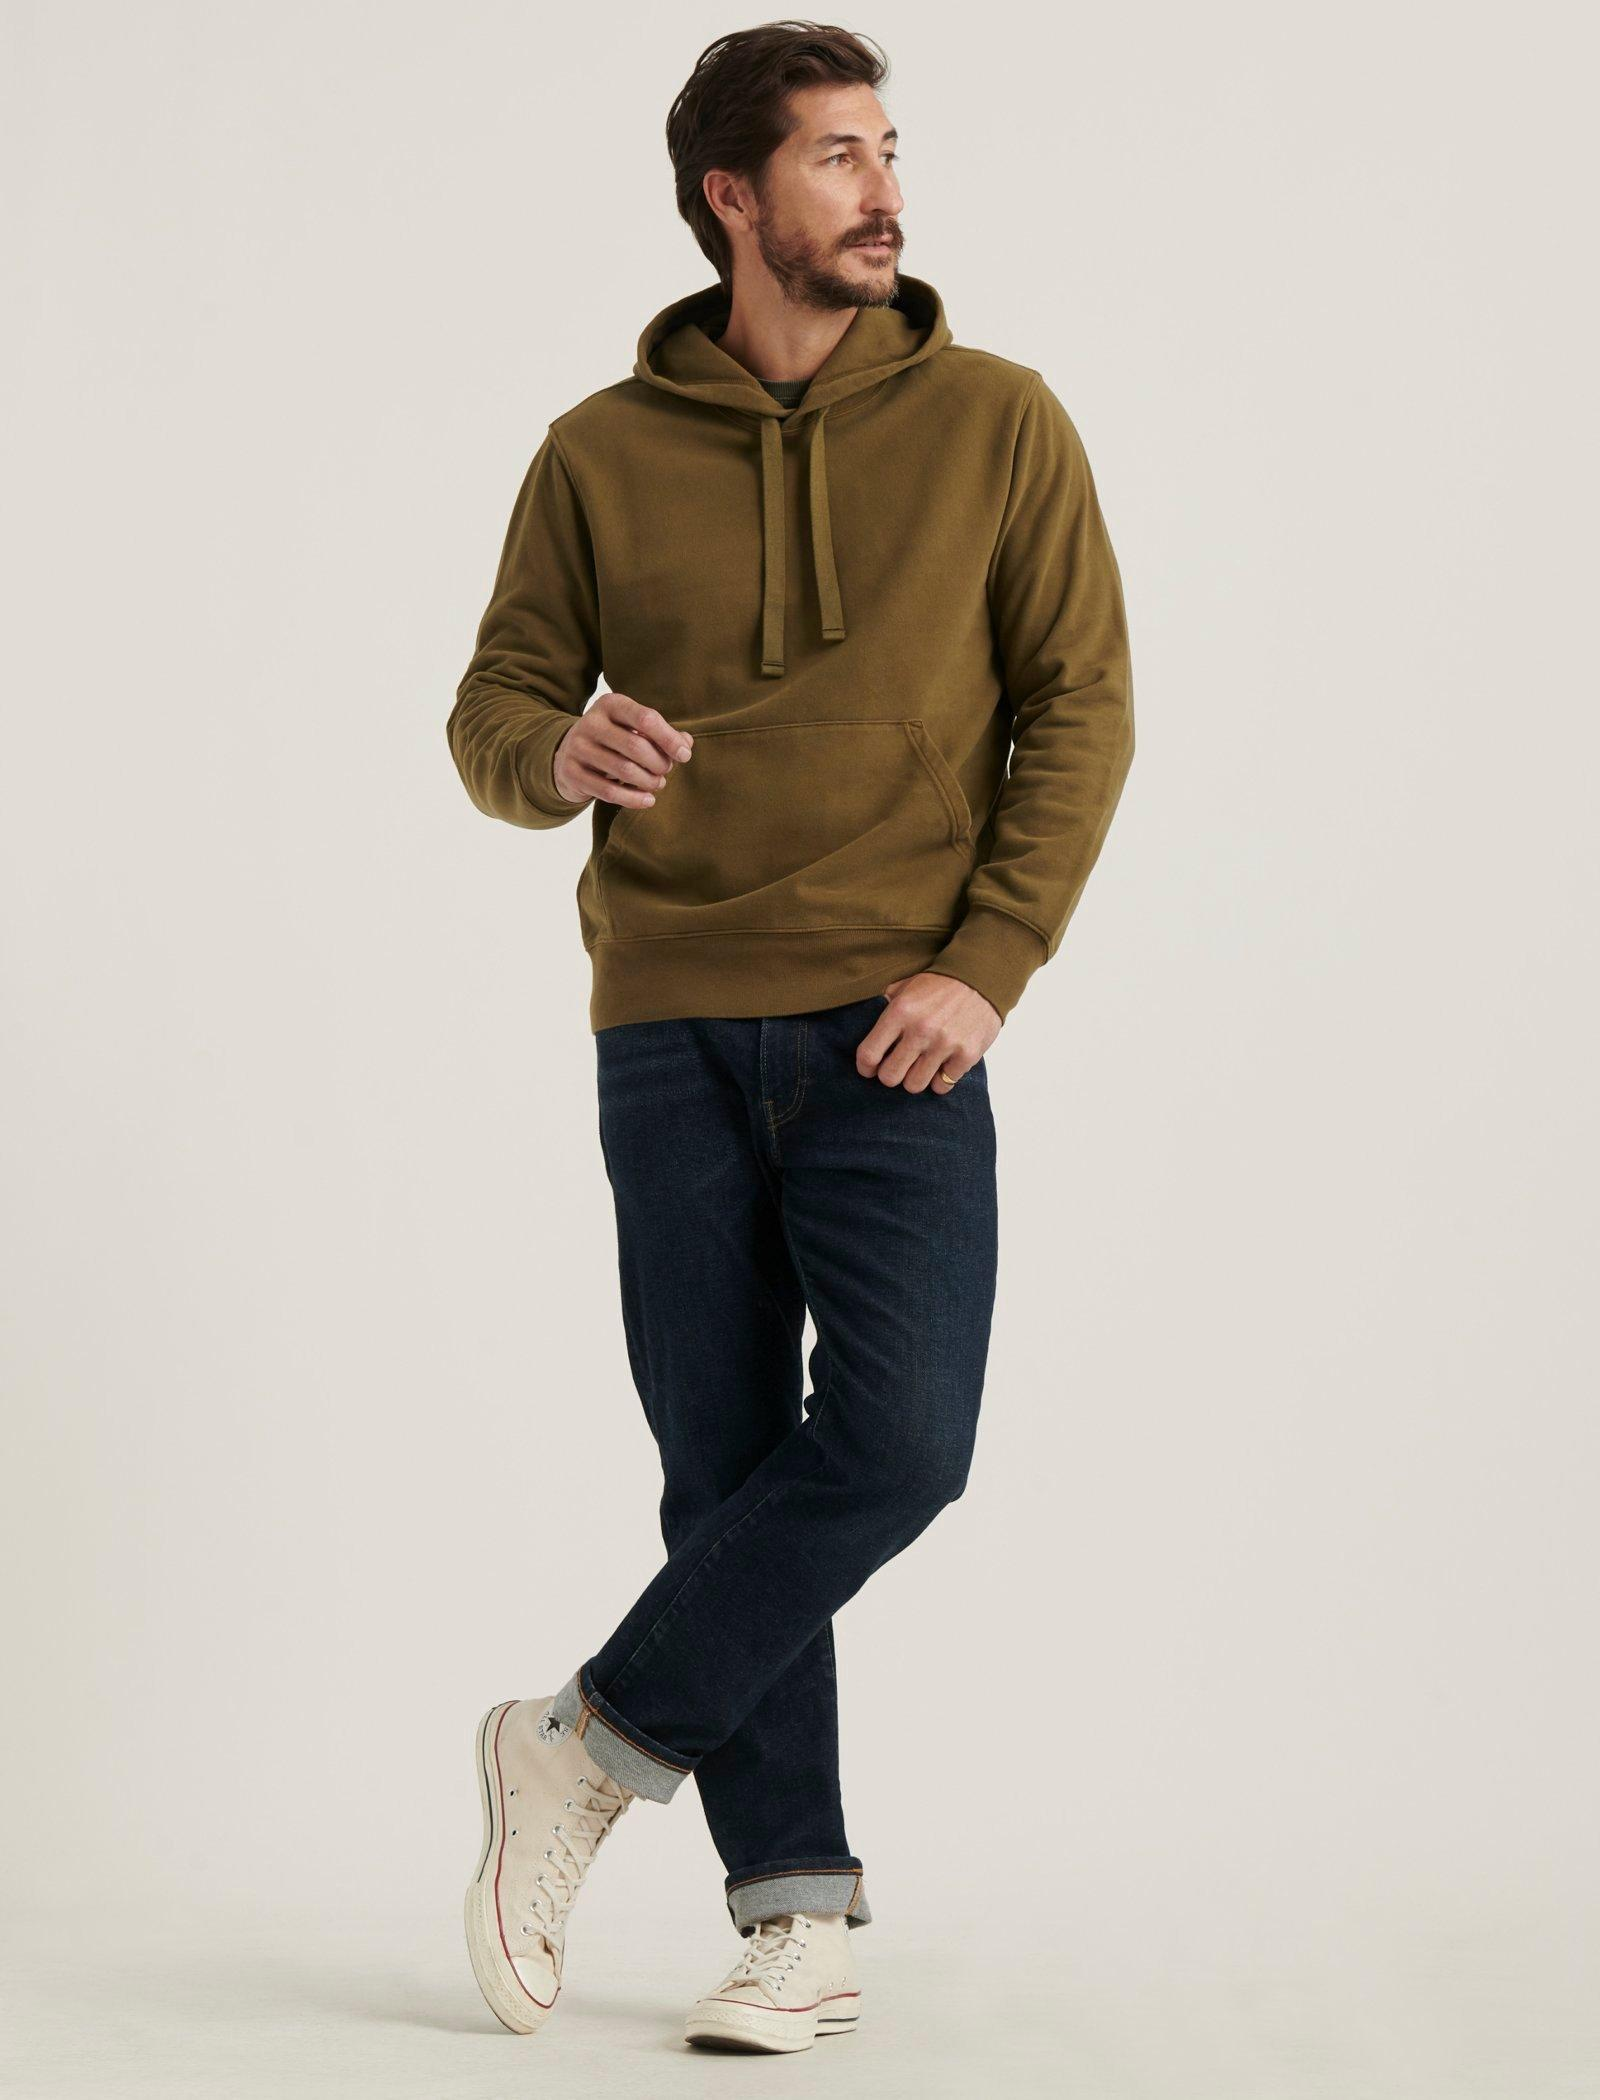 SUEDED FRENCH TERRY HOODIE, image 2